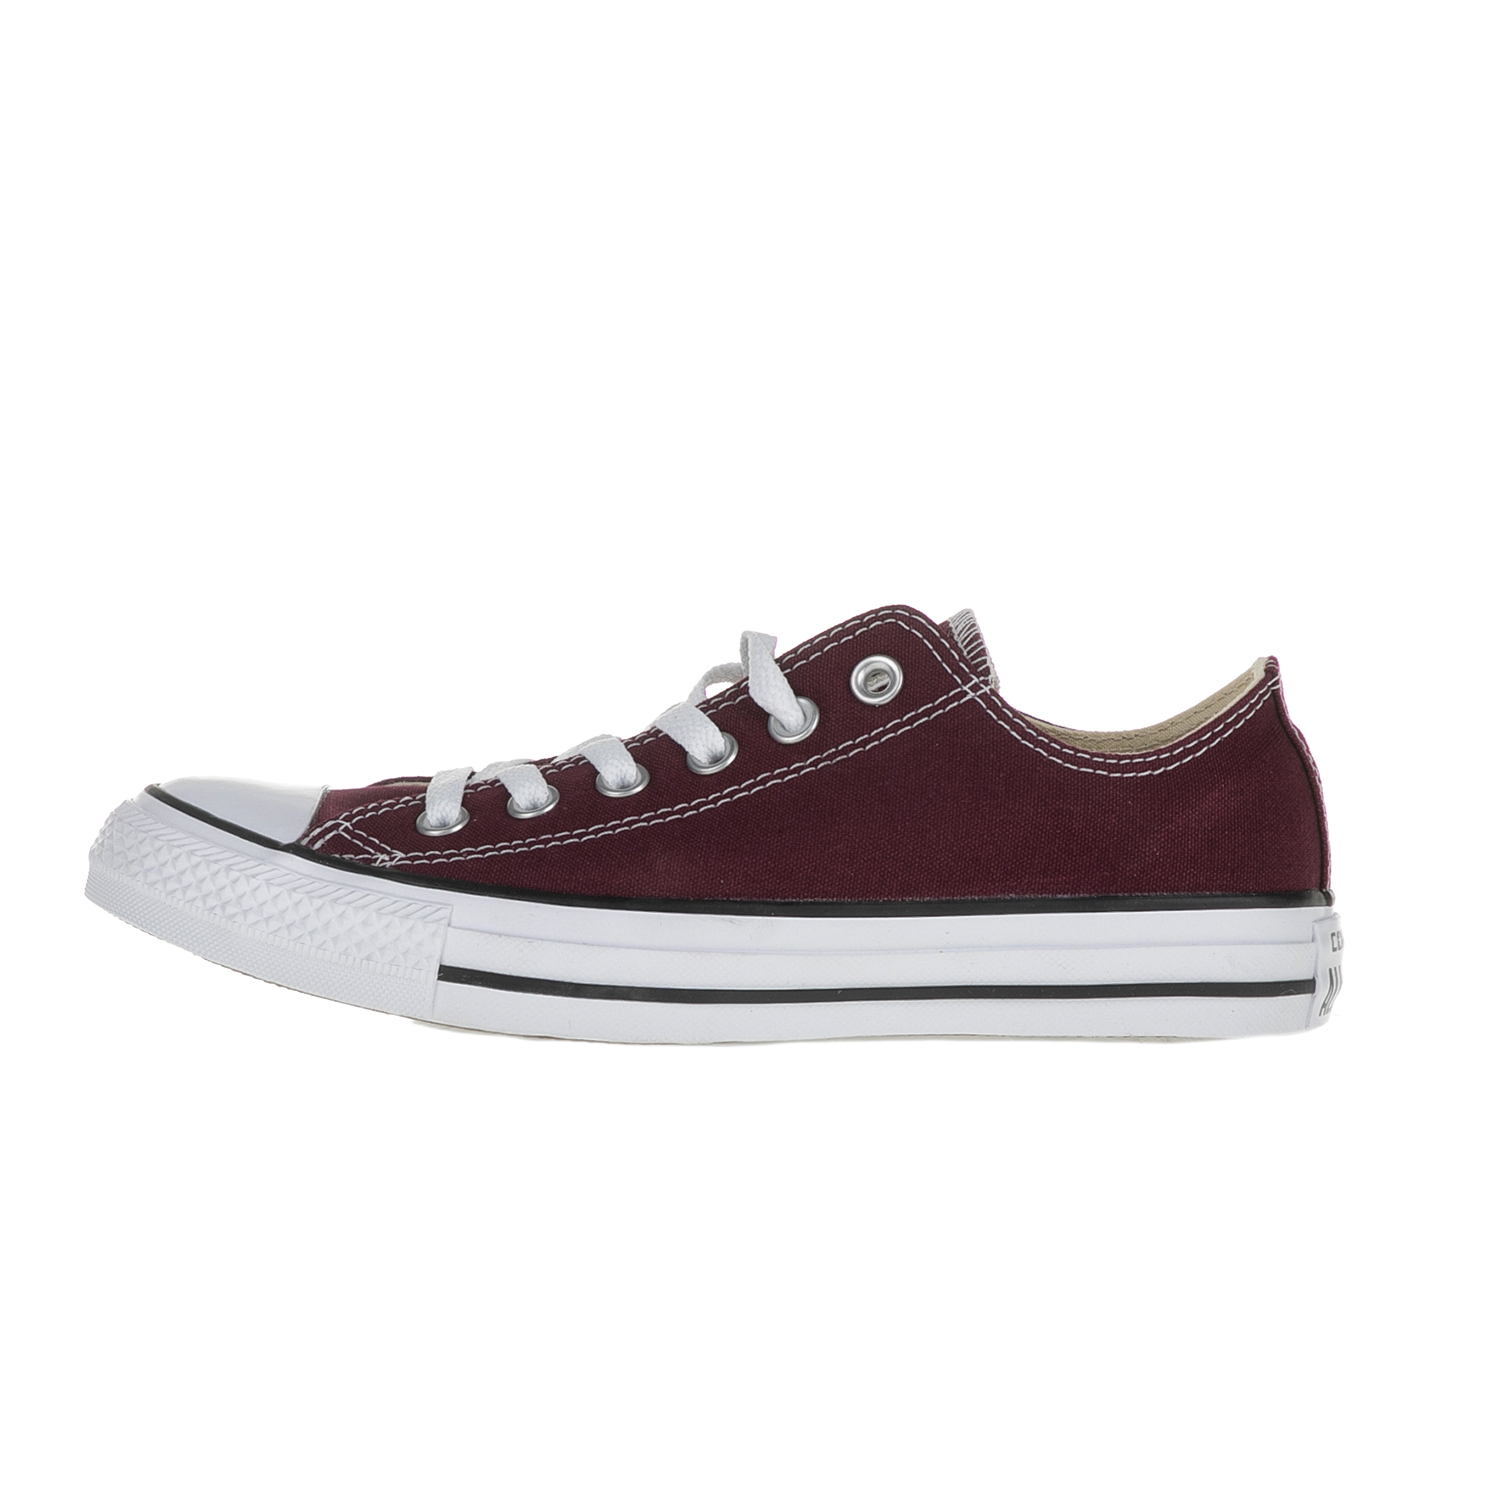 CONVERSE – Unisex χαμηλά sneakers Converse Chuck Taylor All Star Ox μπορντό